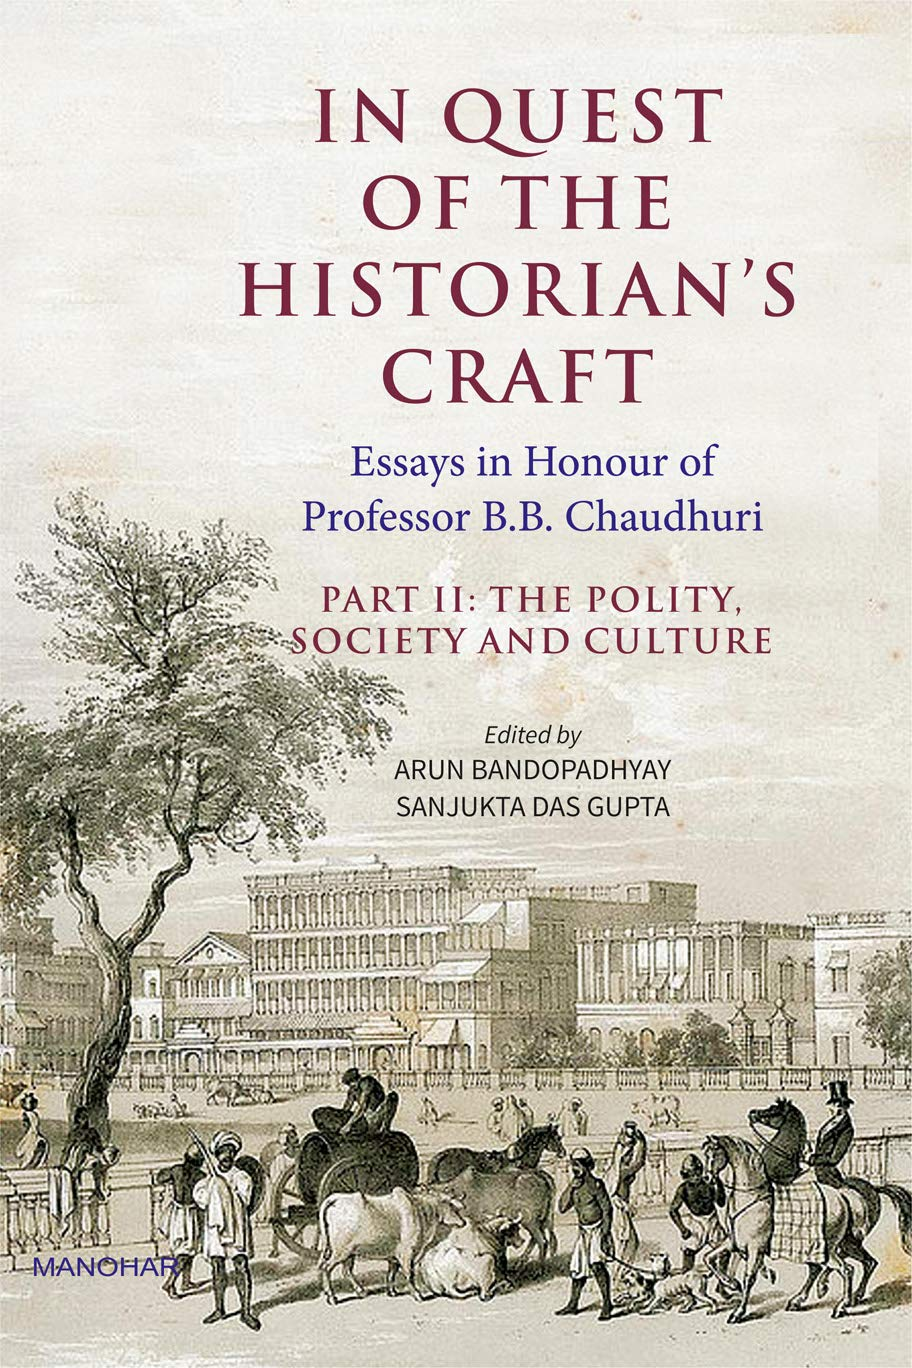 IN QUEST OF THE HISTORIAN'S CRAFT: PART II